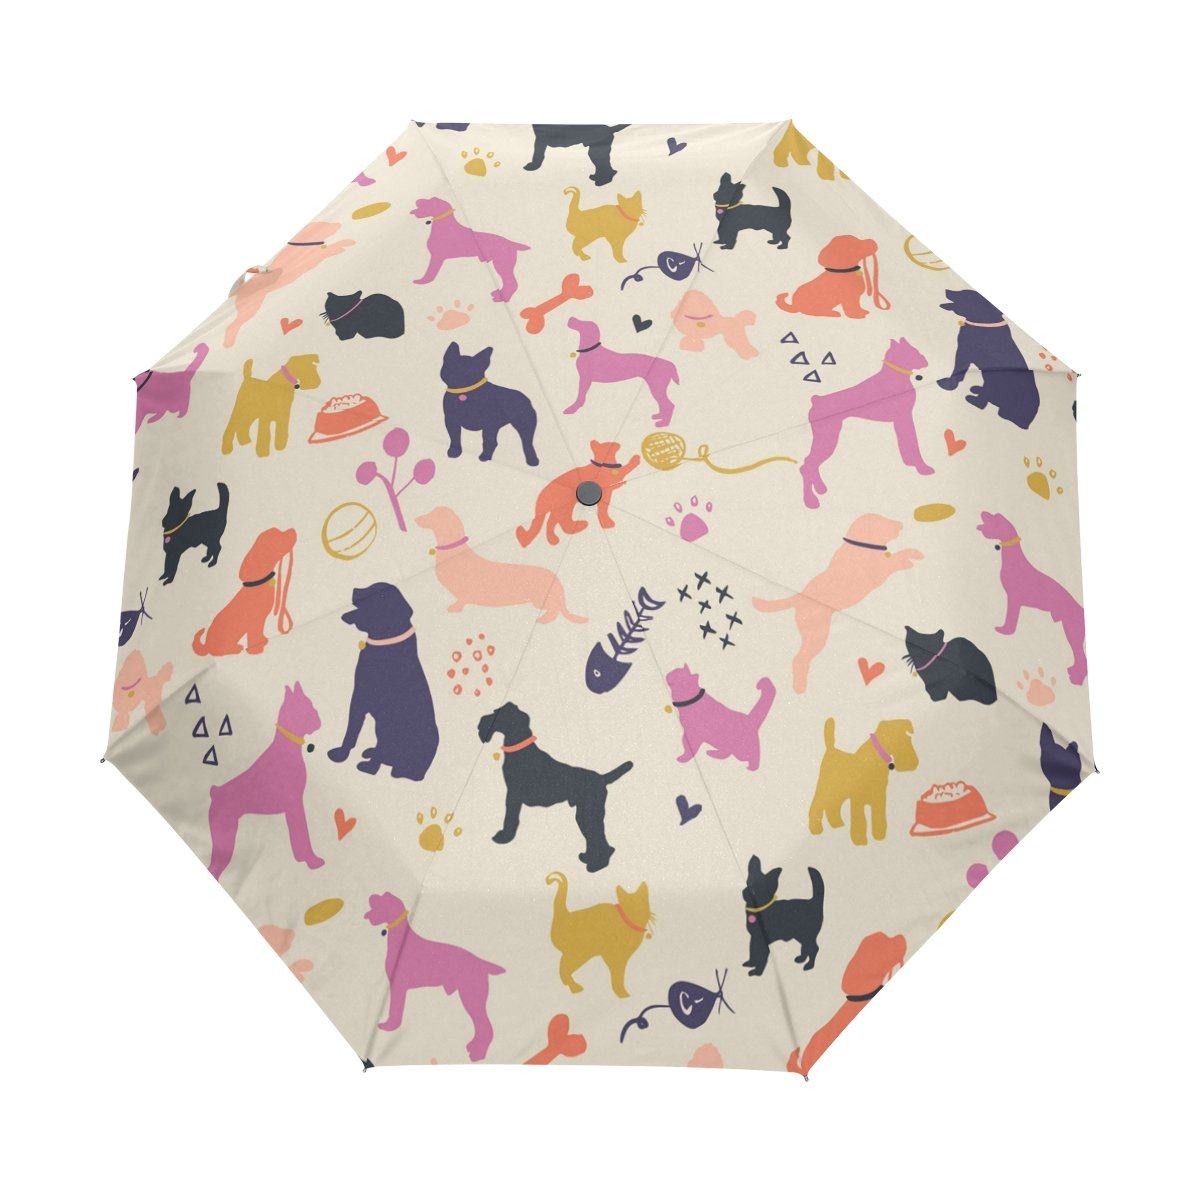 7da4b41a1154 LAVOVO Dogs and Cats Colorful Pattern Umbrella Double Sided Canopy ...